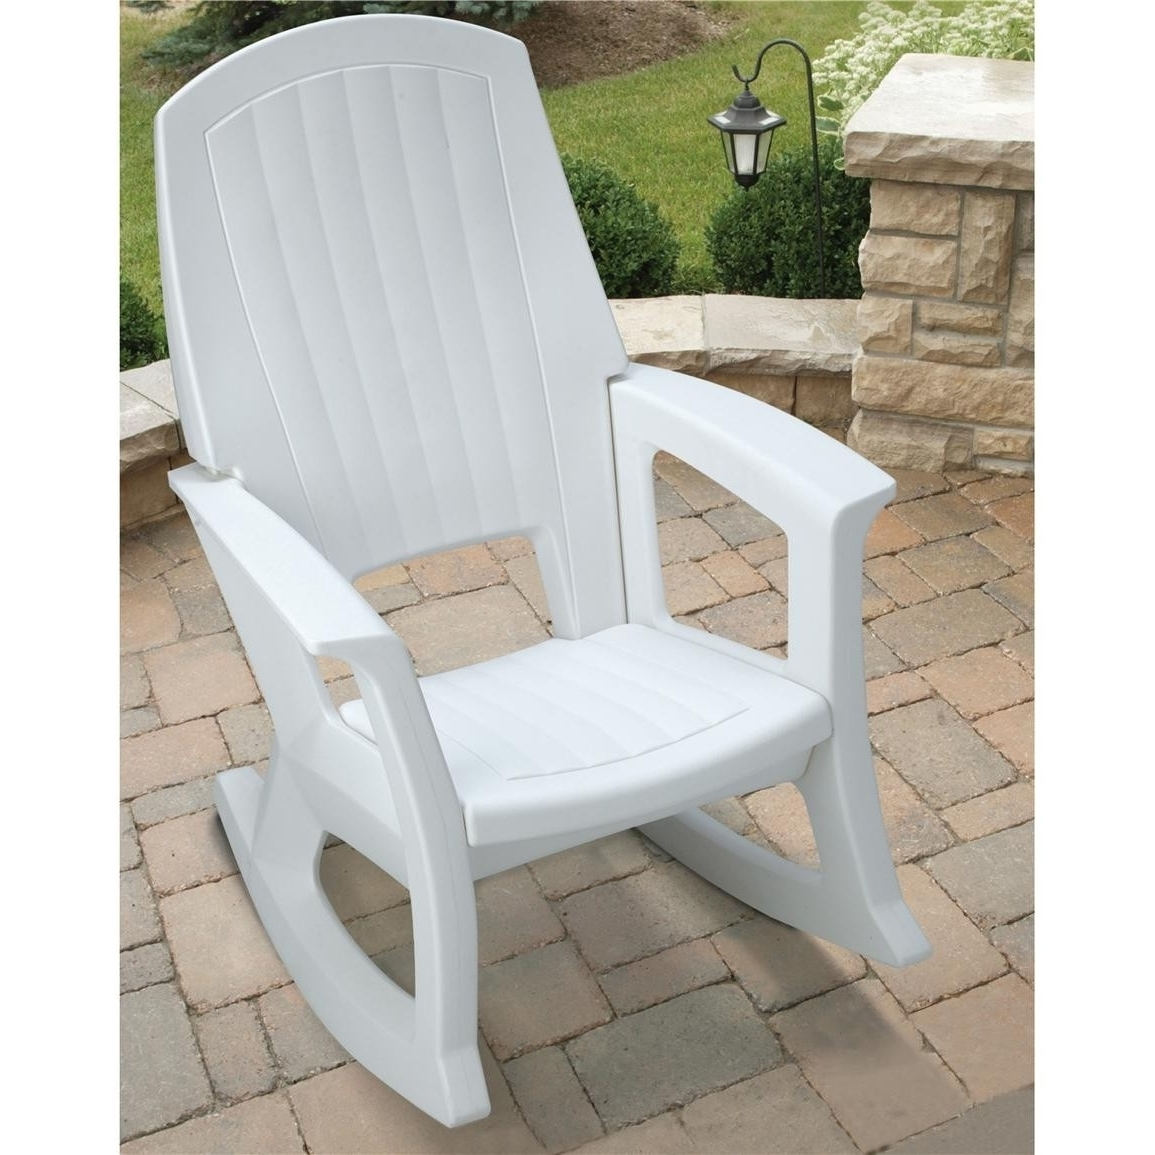 Newest White Patio Rocking Chairs Regarding White Patio Rocking Chair Intended For Patio Rocking Chairs Patio (Gallery 6 of 20)